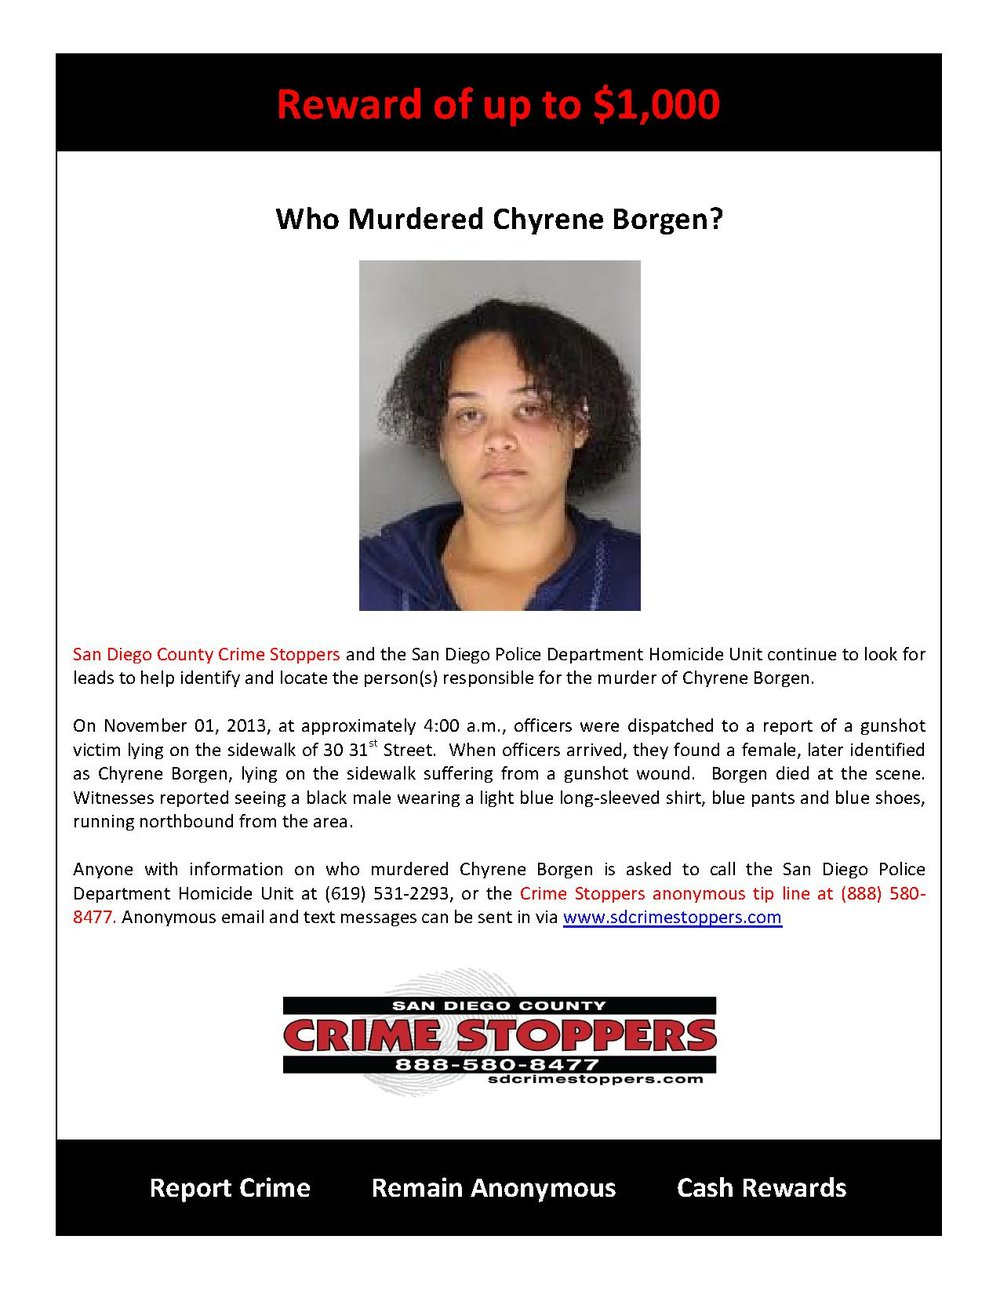 Who Murdered Chyrene Borgen_1